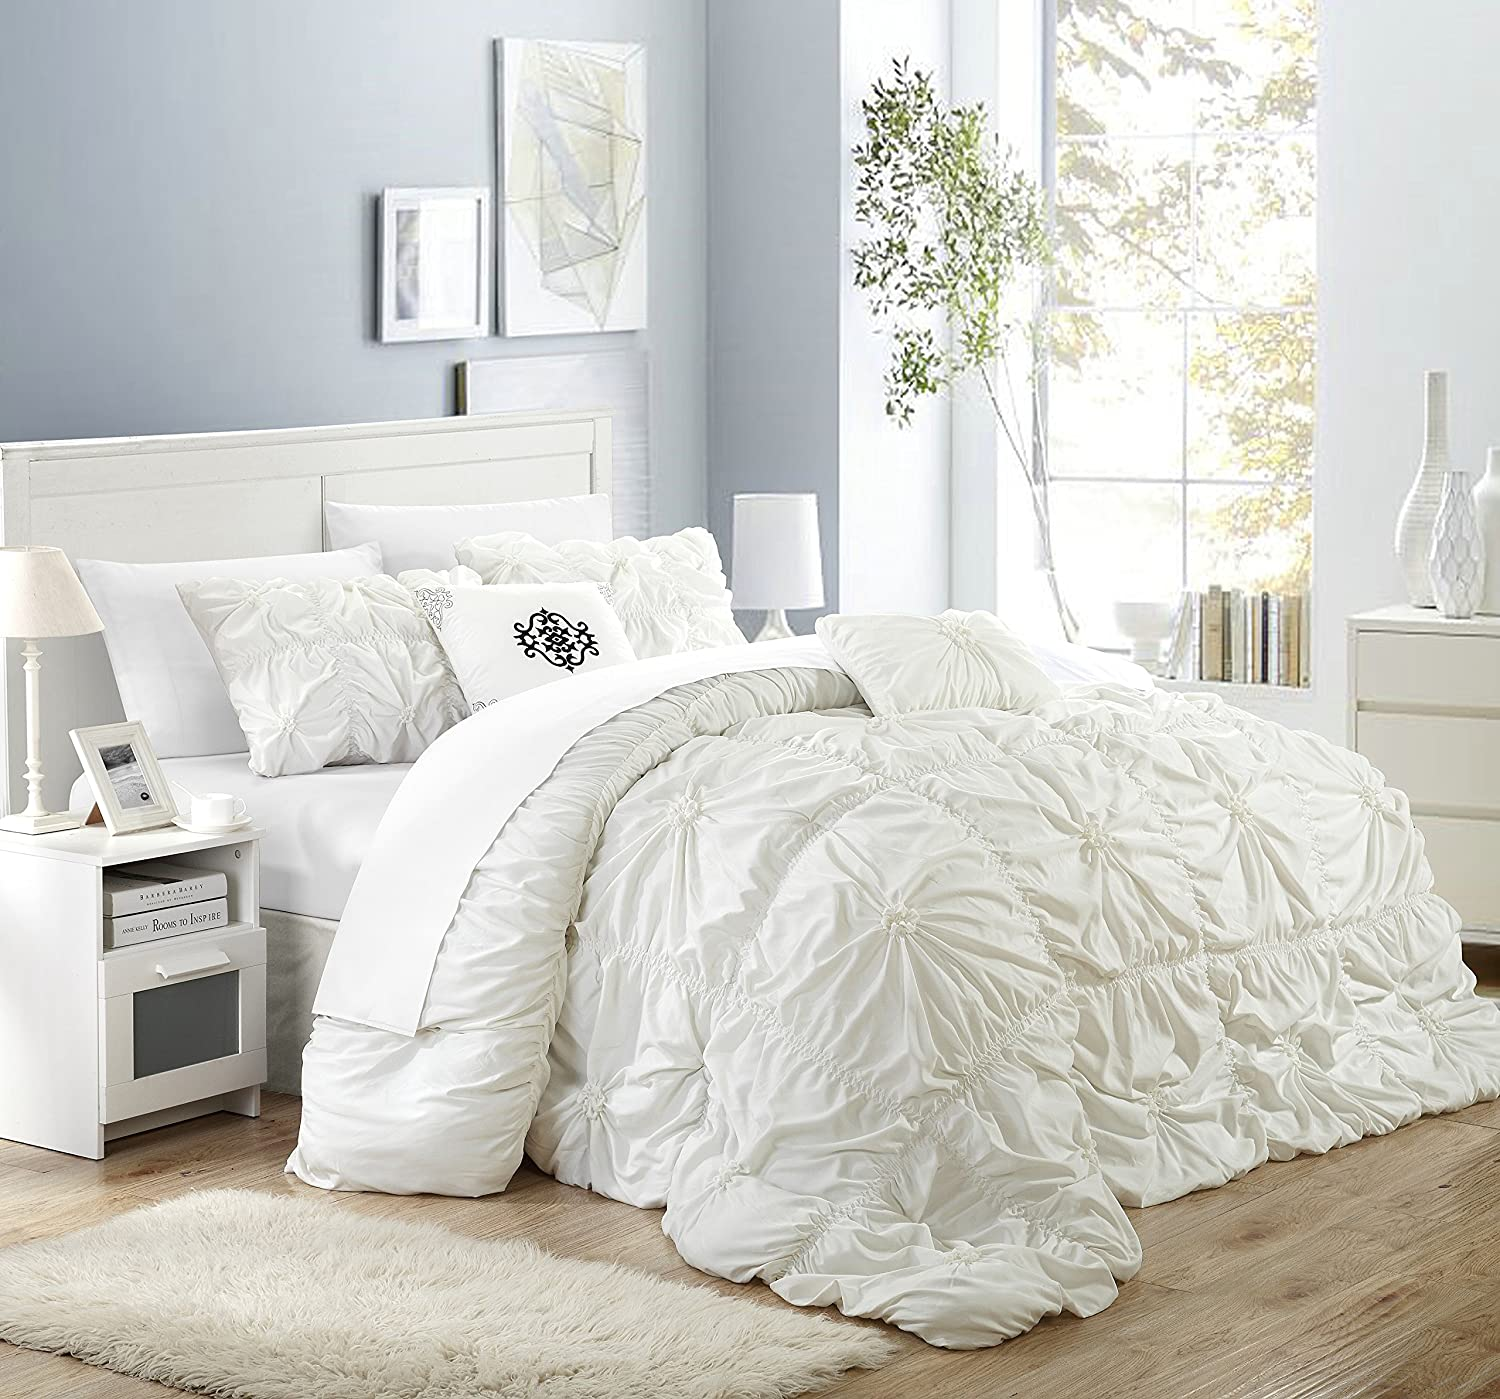 set comforter exquisite ruffle this pin which ruffles waterfall sets white features princess